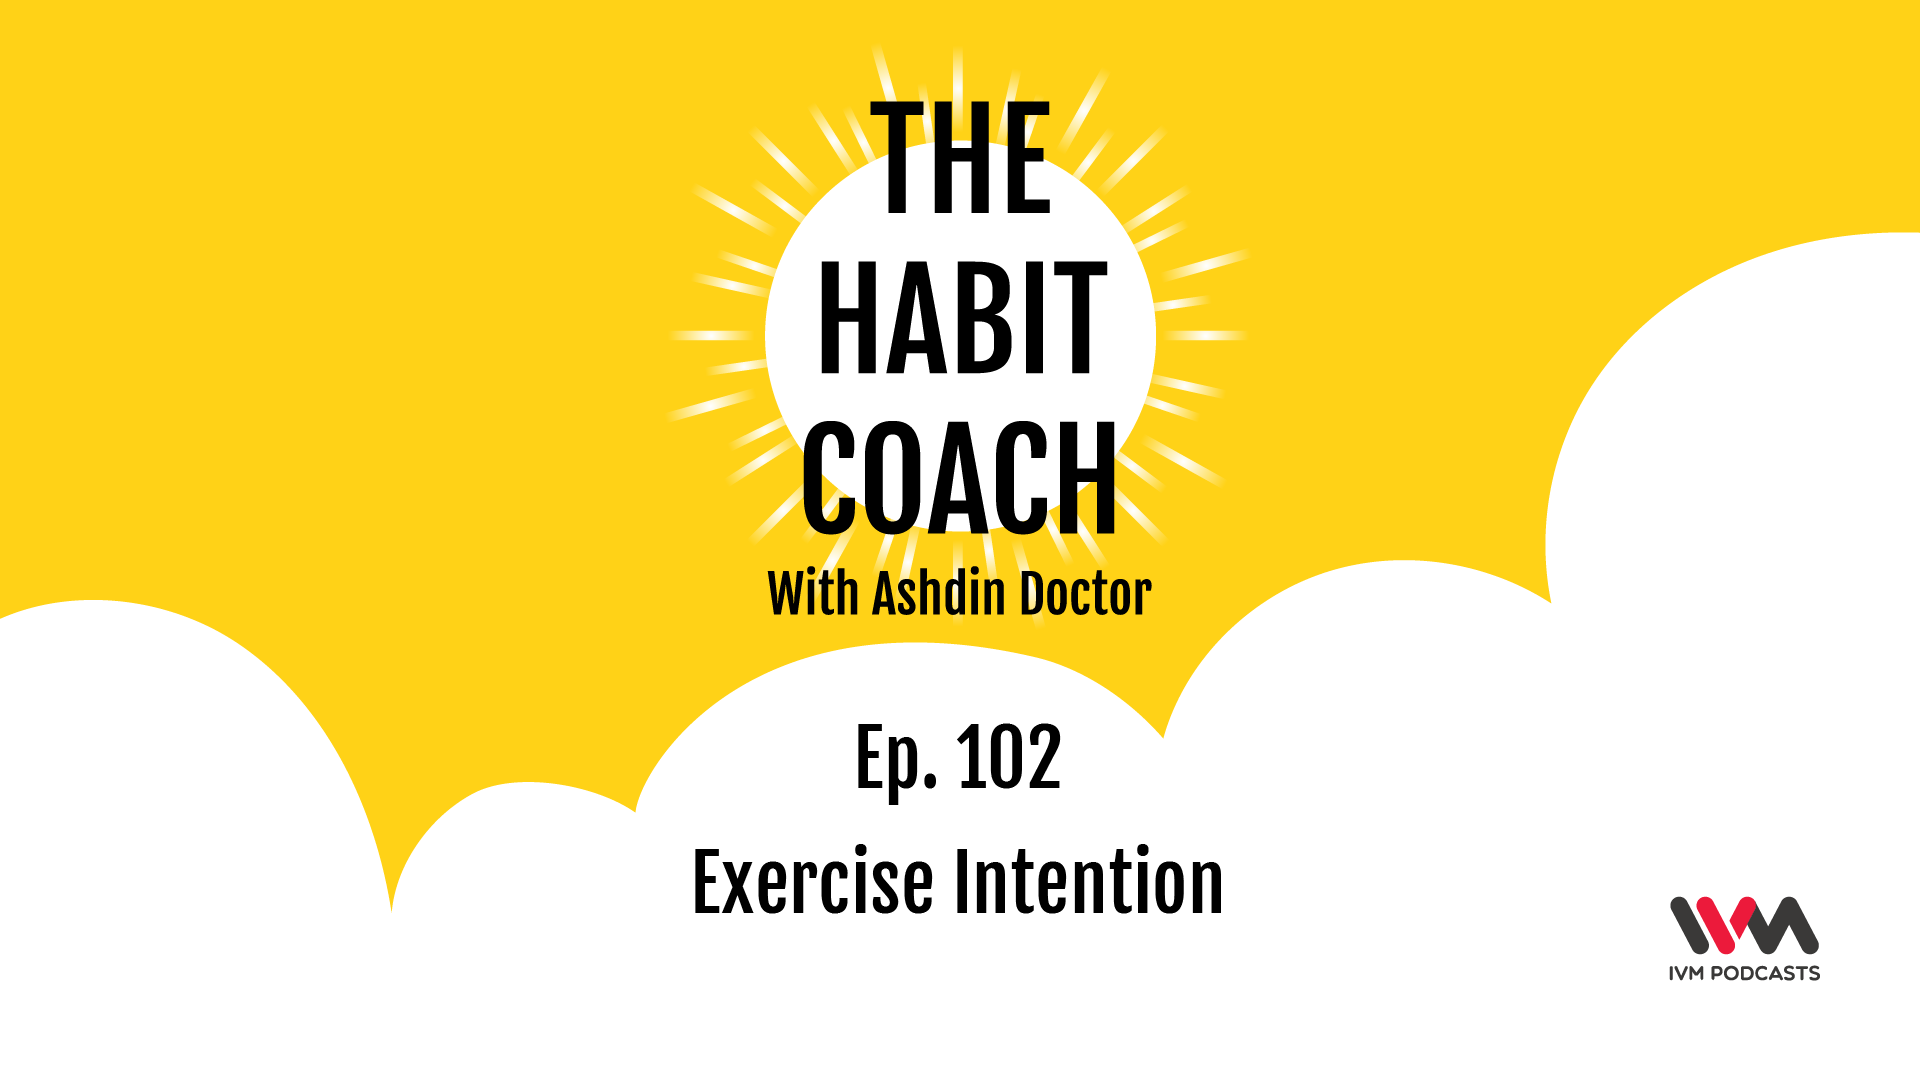 TheHabitCoachEpisode102.png